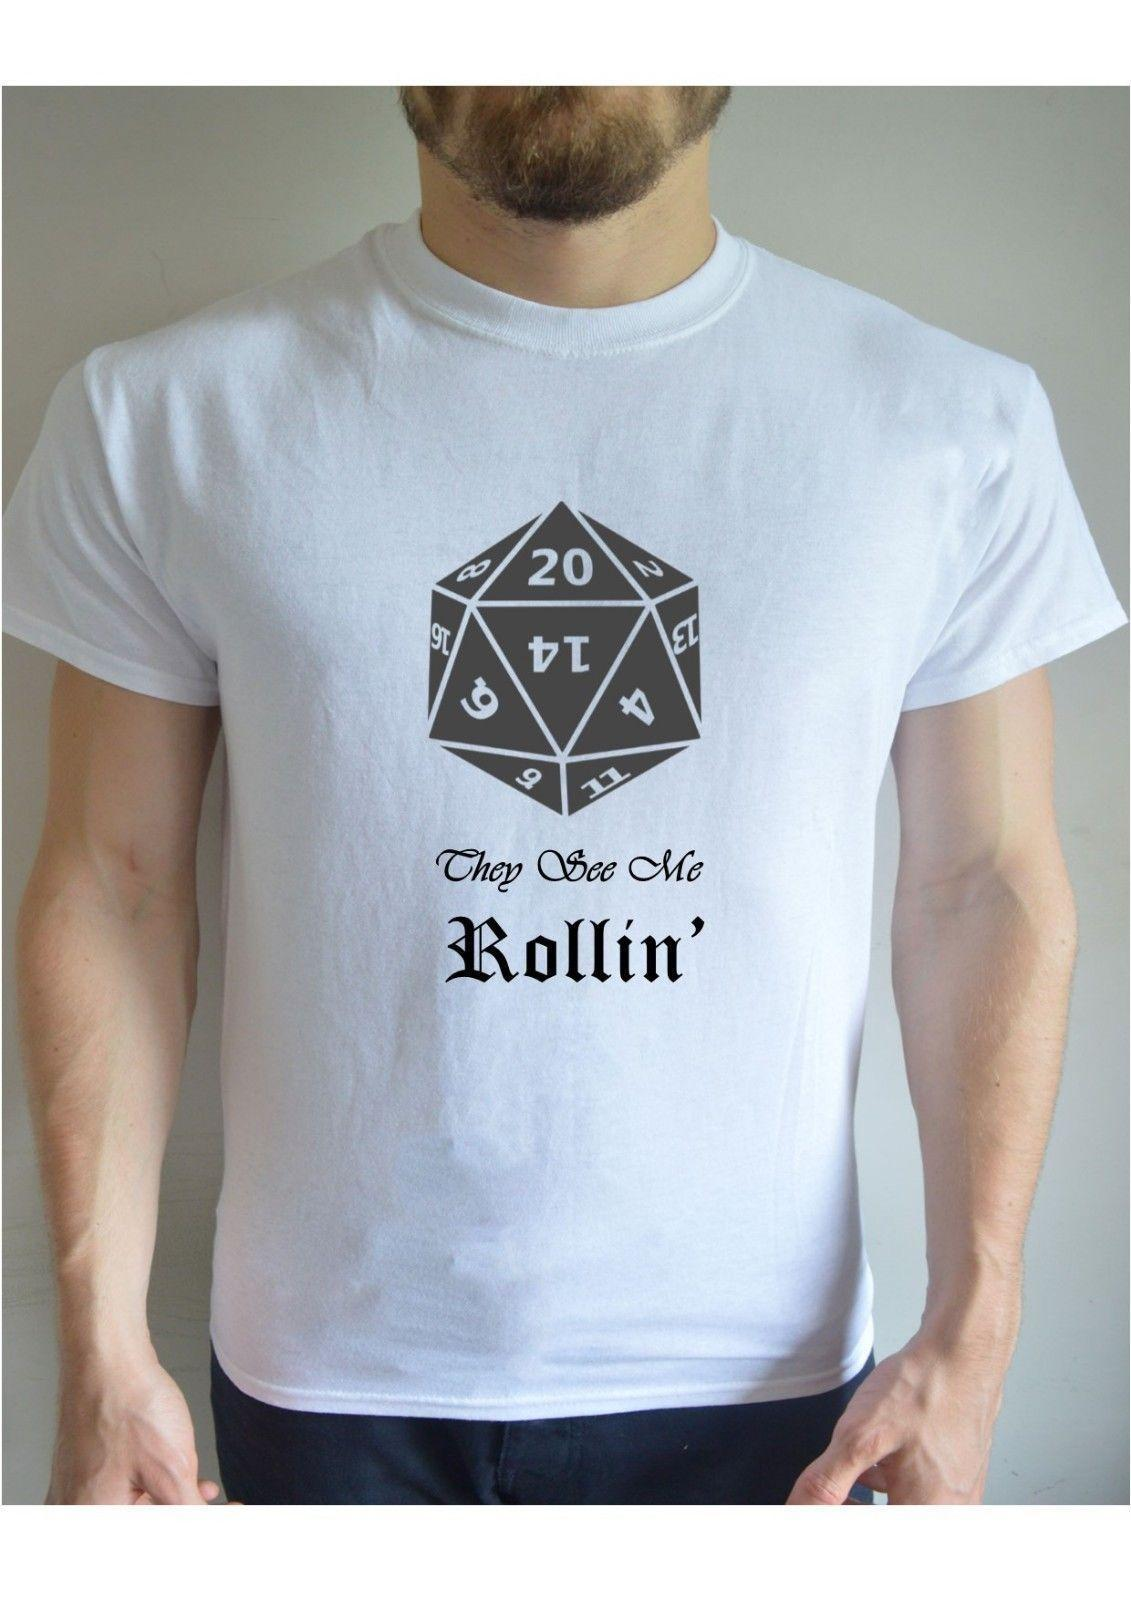 7ec094db2 Printed T Shirt They See Me Rollin' D&D Dungeons Dragons Retro Cool Present  Cool Tee Shirts Designs Web T Shirts From Linnan06, $14.67| DHgate.Com